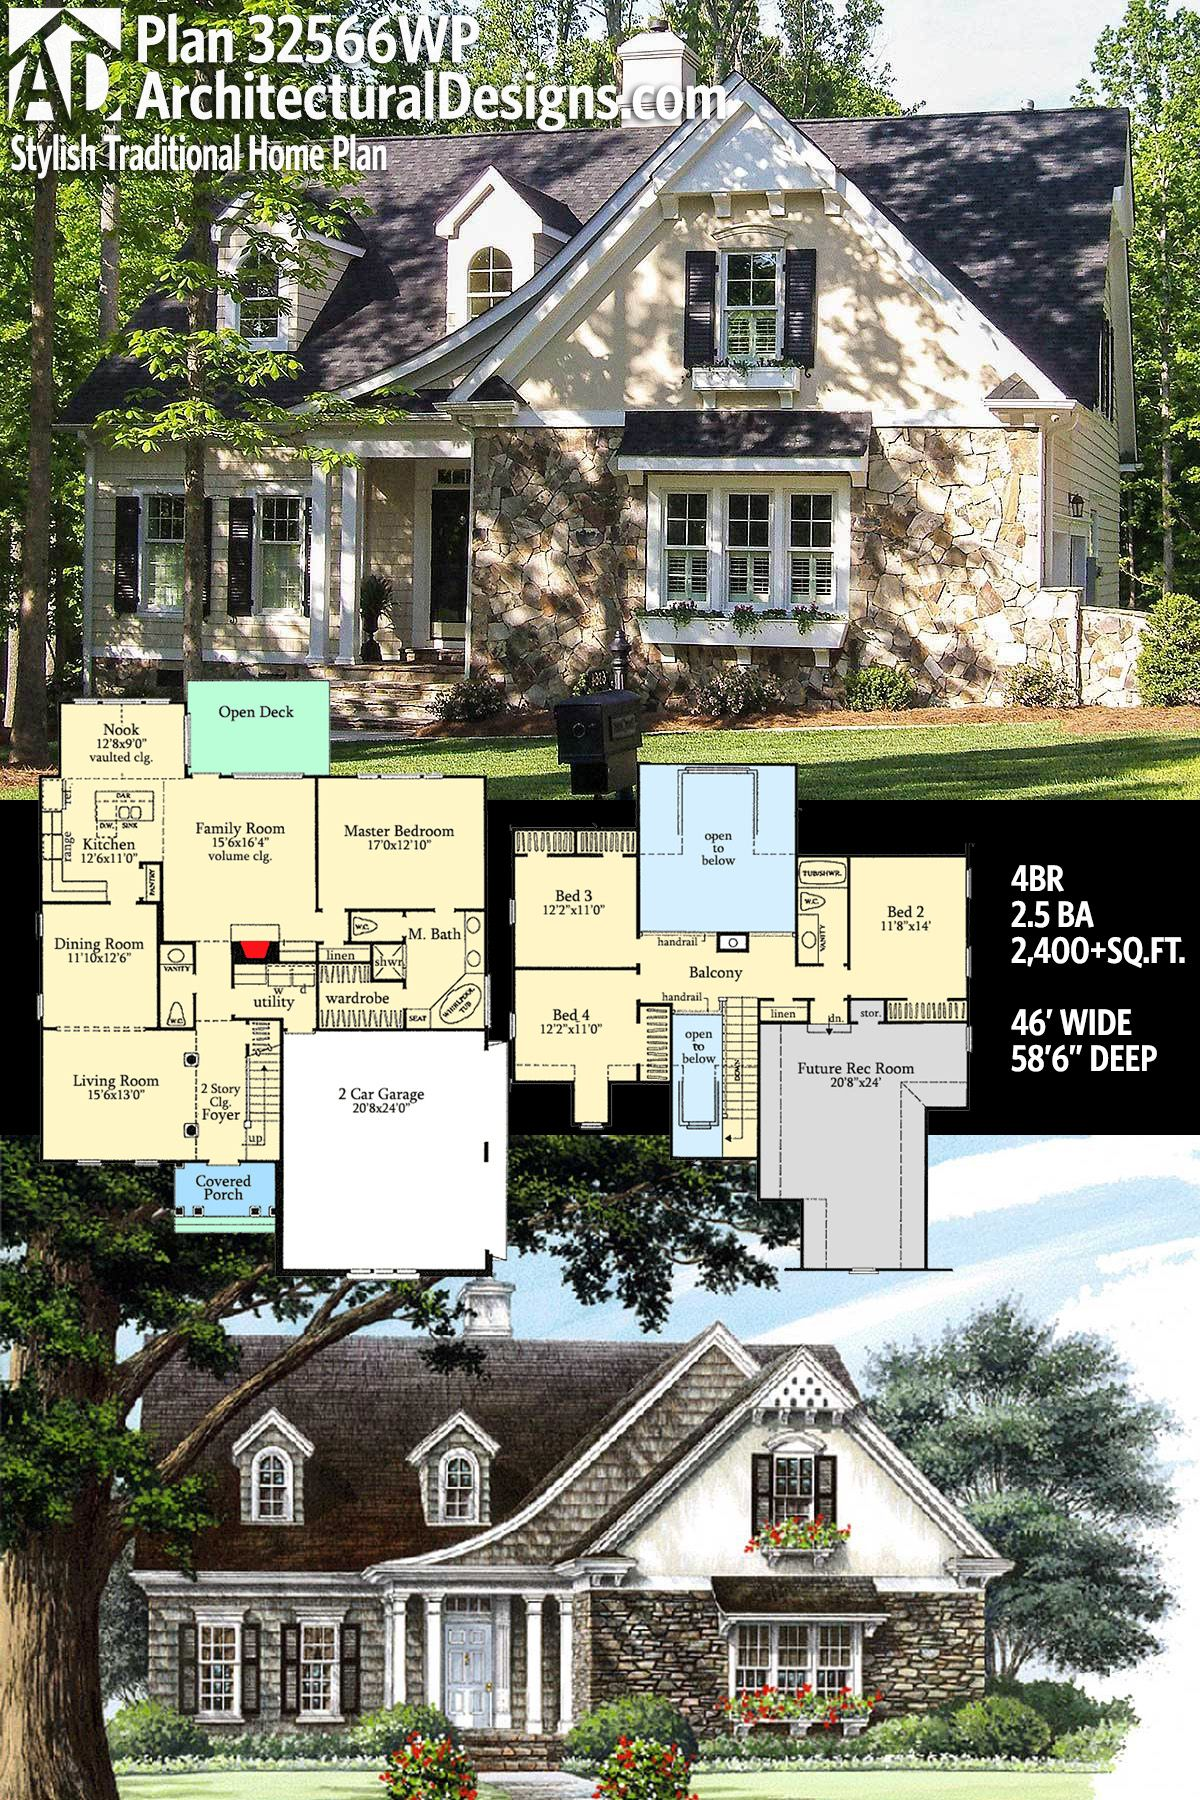 Plan 32566wp Stylish Traditional Home Plan New House Plans